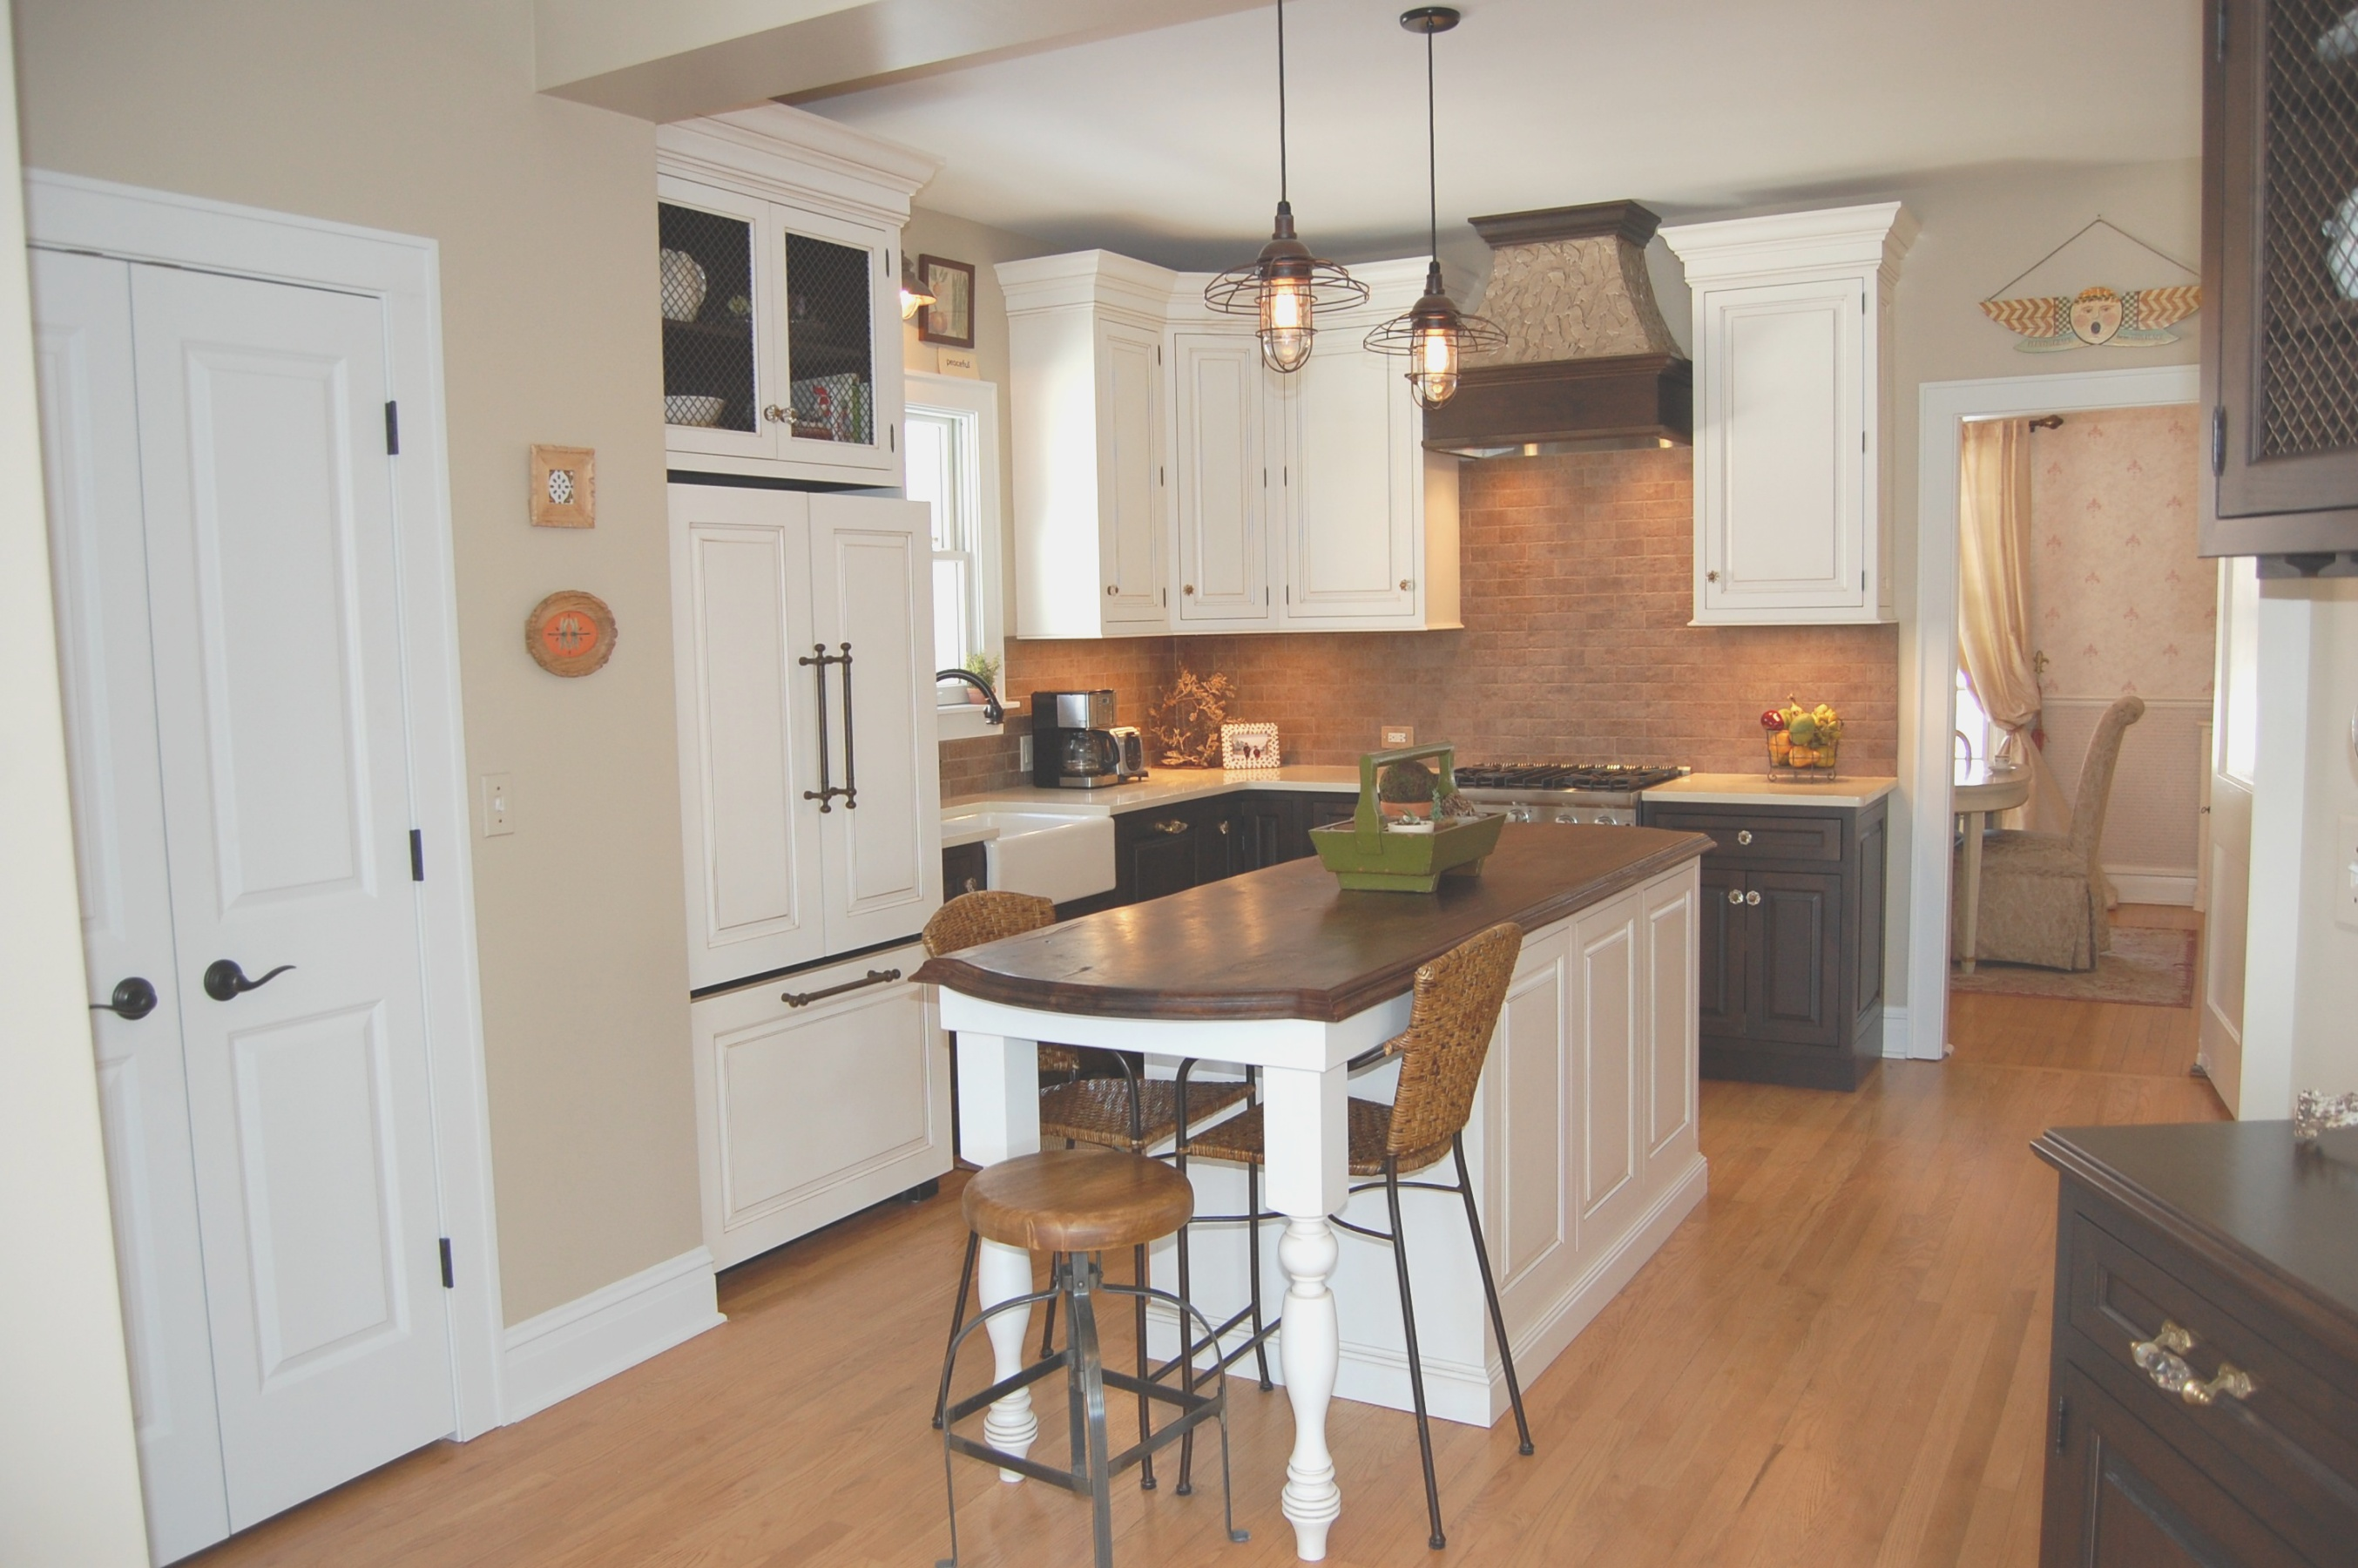 narrow kitchen island ideas | Masterly Baffling Small Kitchen Island Ideas Plus Kitchen Island ..